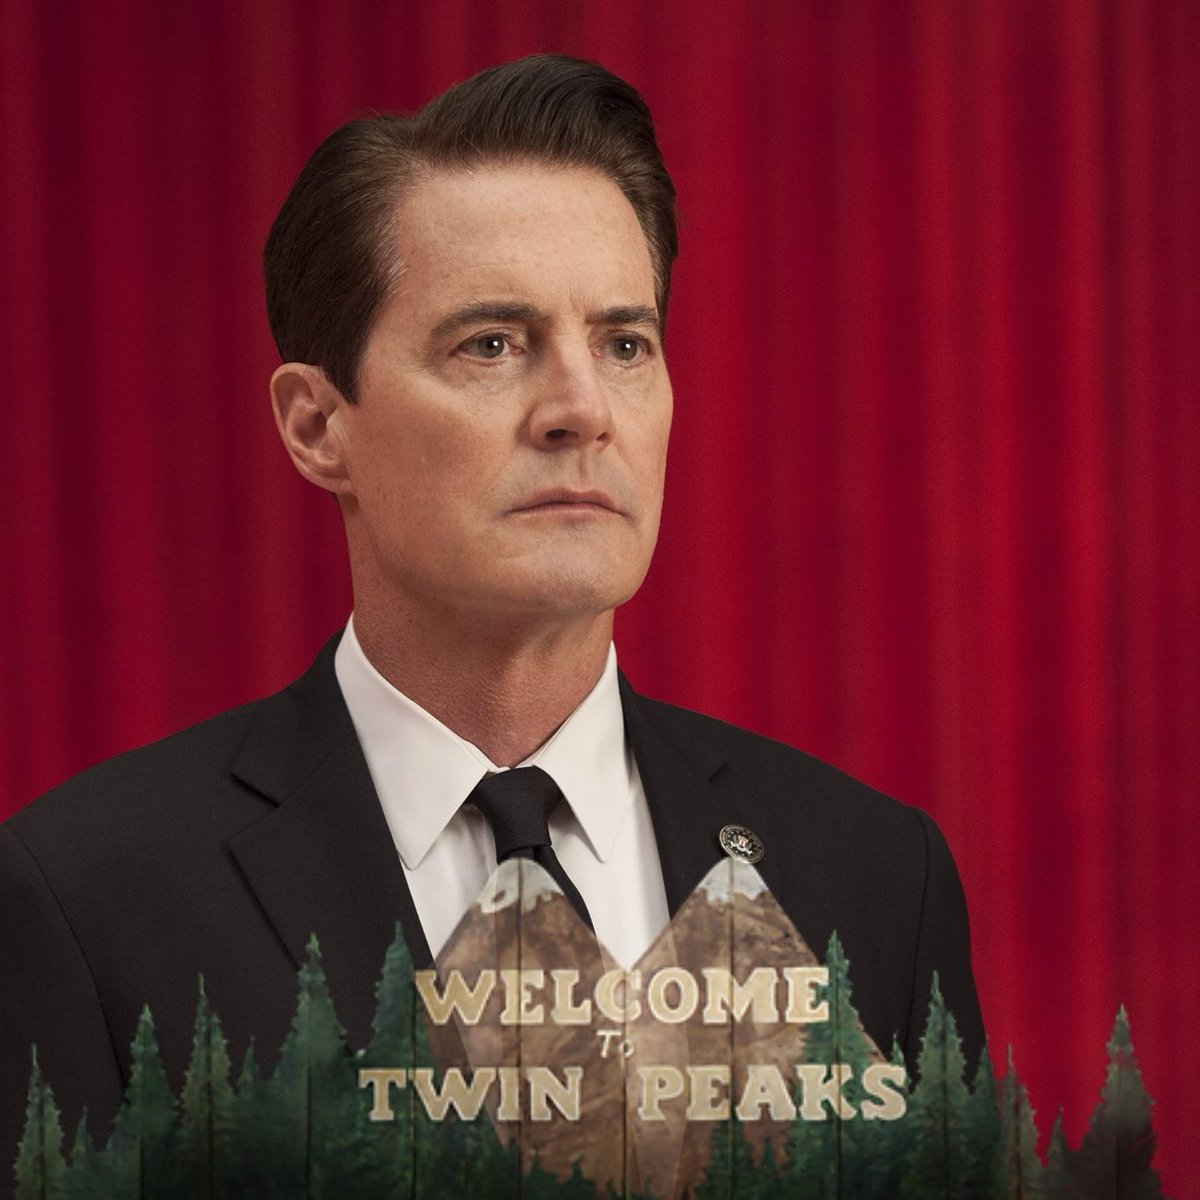 Twin peaks on twitter celebrate the premiere of the new twin peaks on twitter celebrate the premiere of the new twinpeaks with a custom facebook frame for your profile pic httpstunnidqr6gw jeuxipadfo Gallery